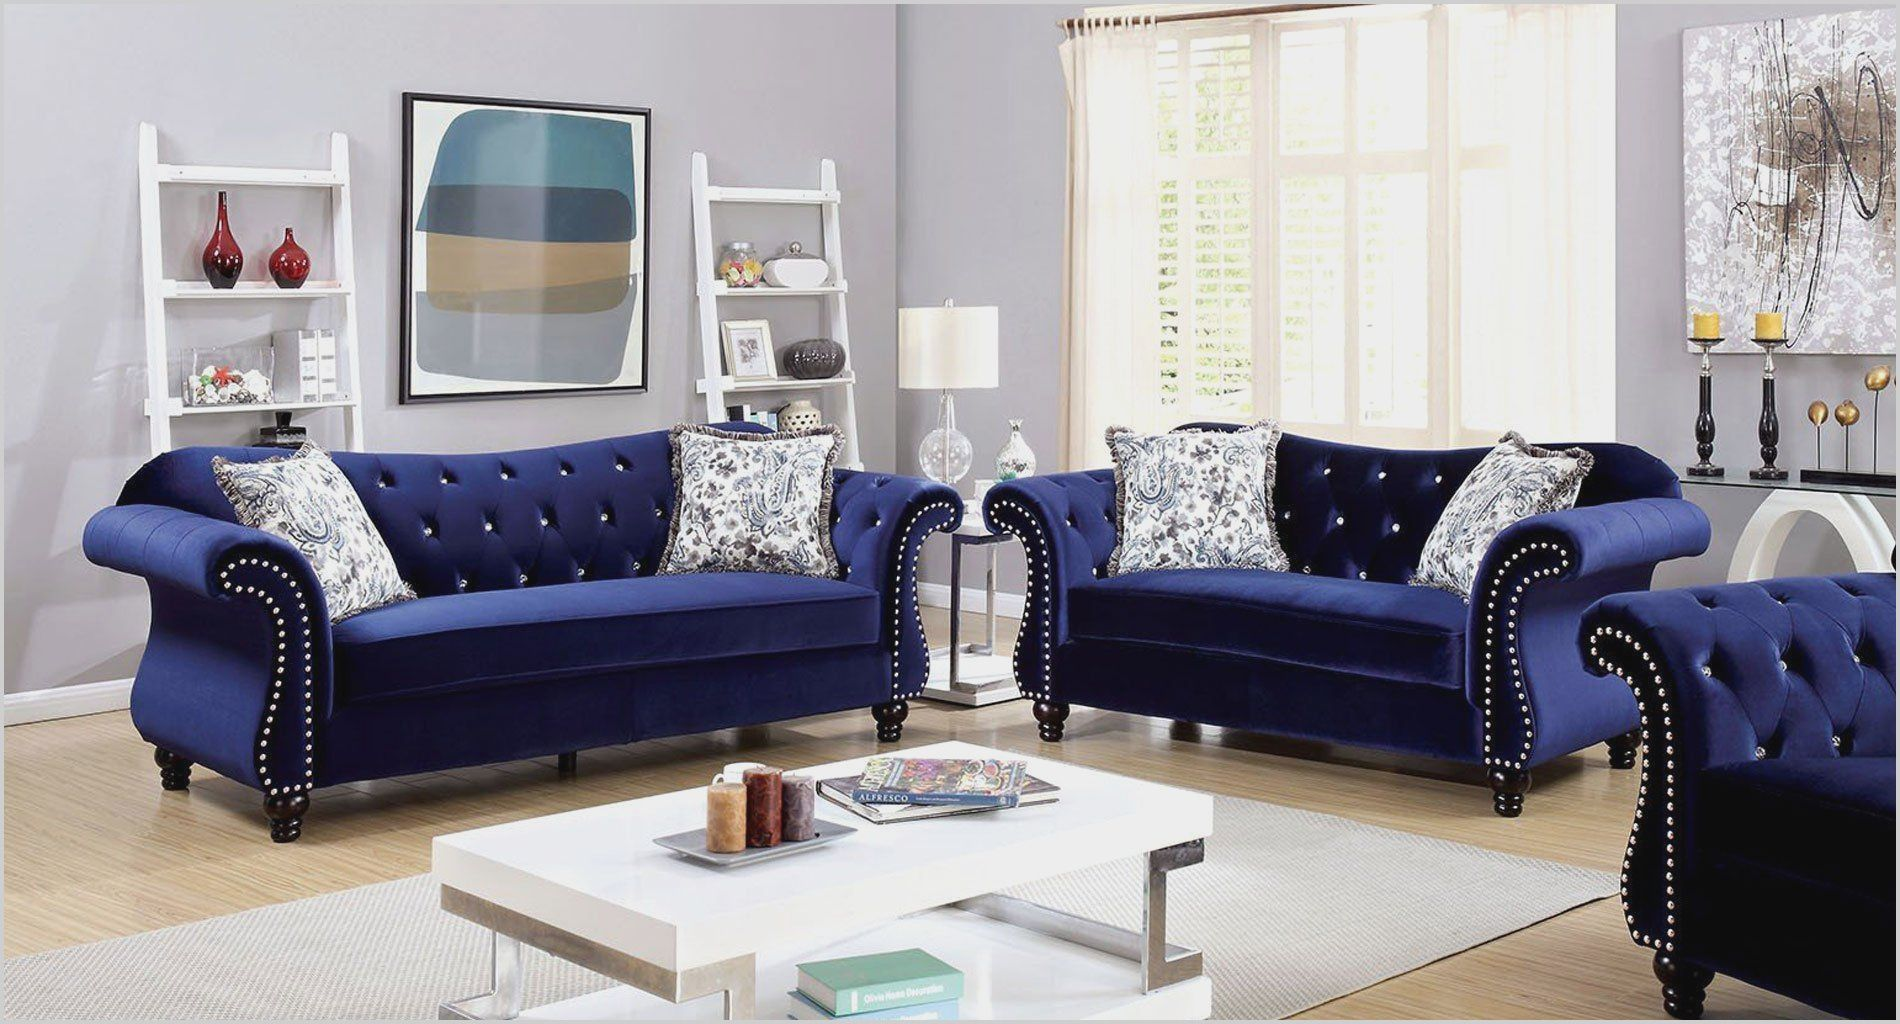 Best Living Room With Navy Blue Sofa In 2020 Blue Sofas 400 x 300